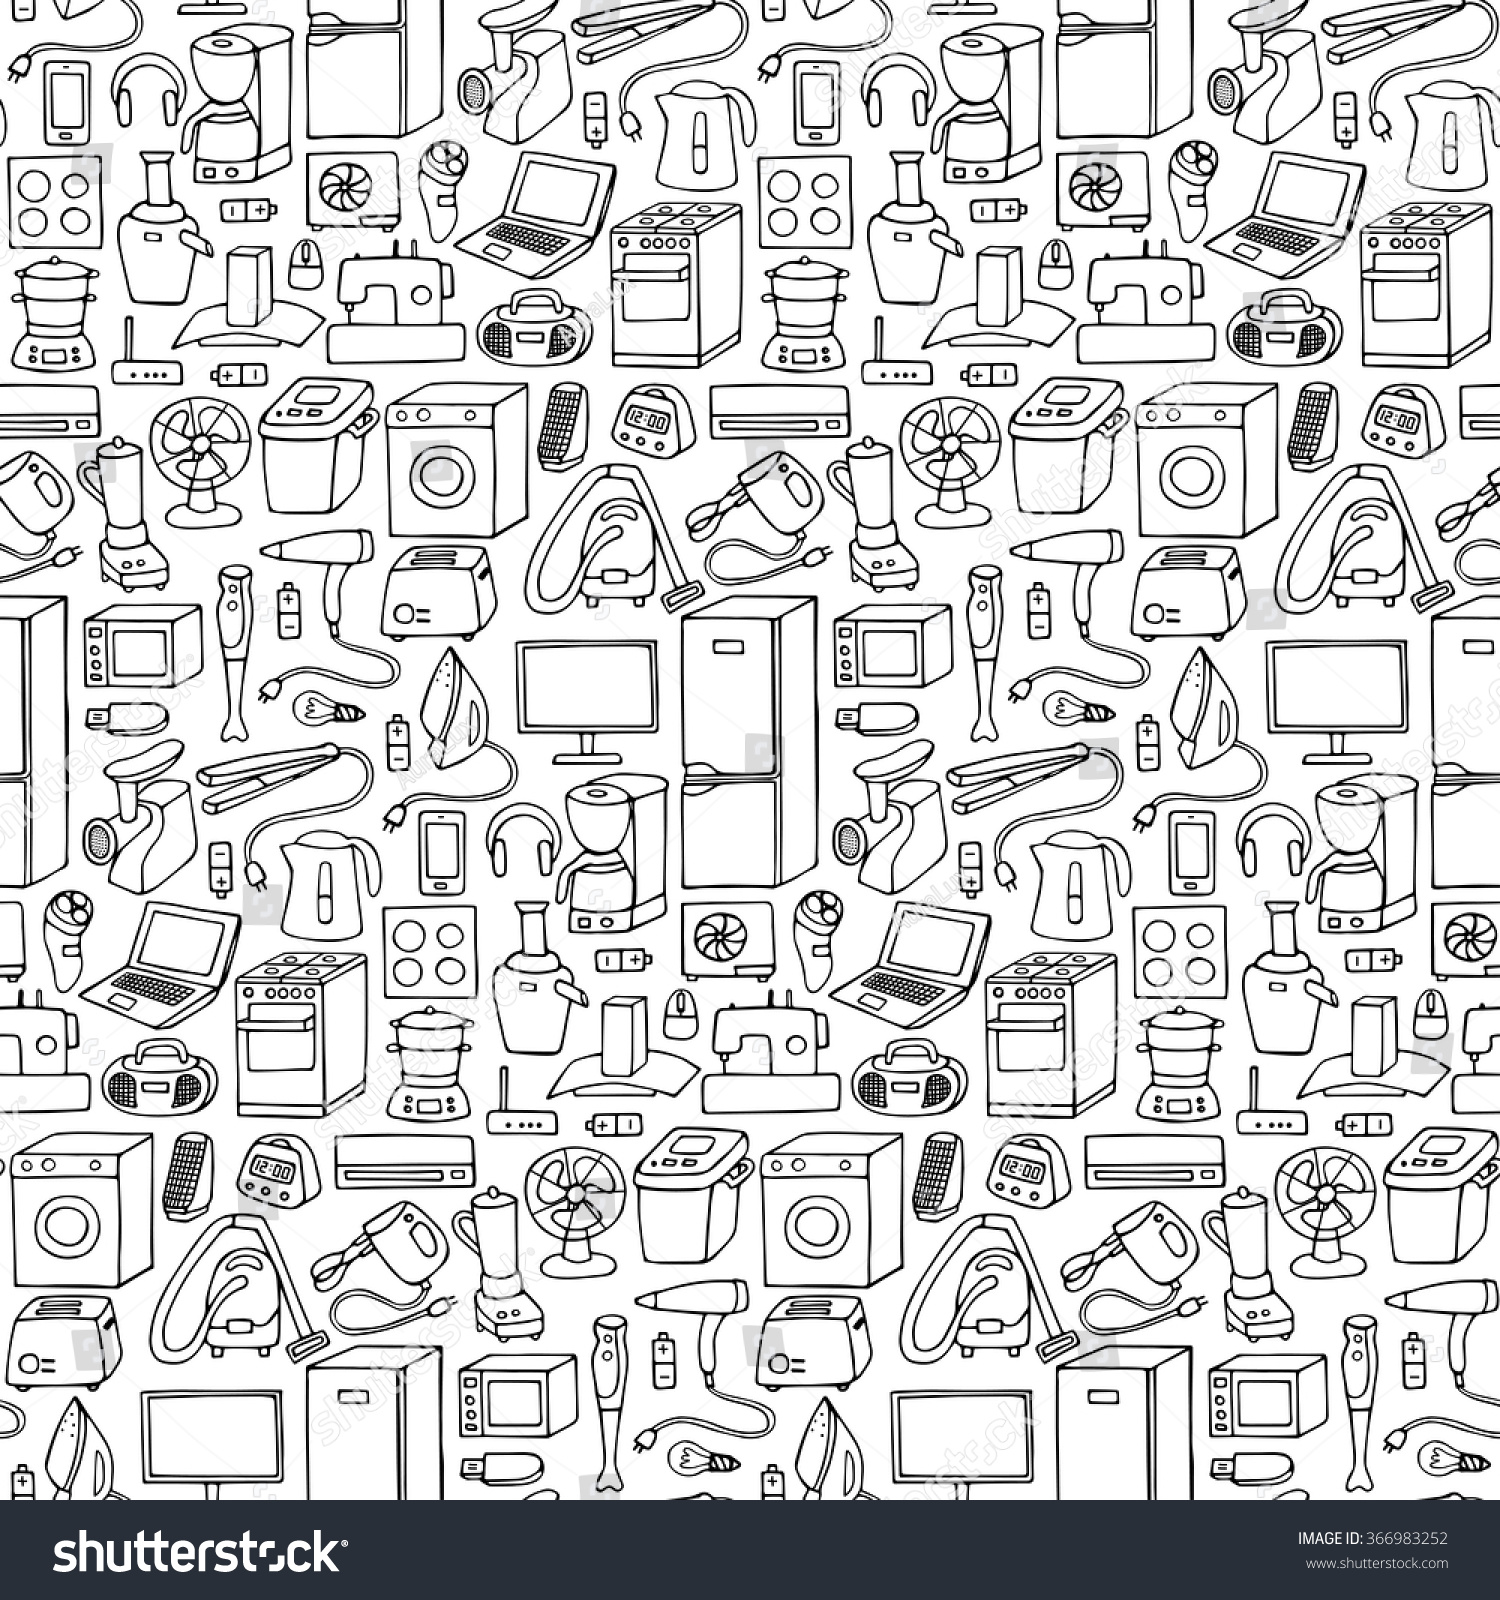 Household appliances hand drawn seamless pattern. Vector illustration of doodle seamless household appliances element